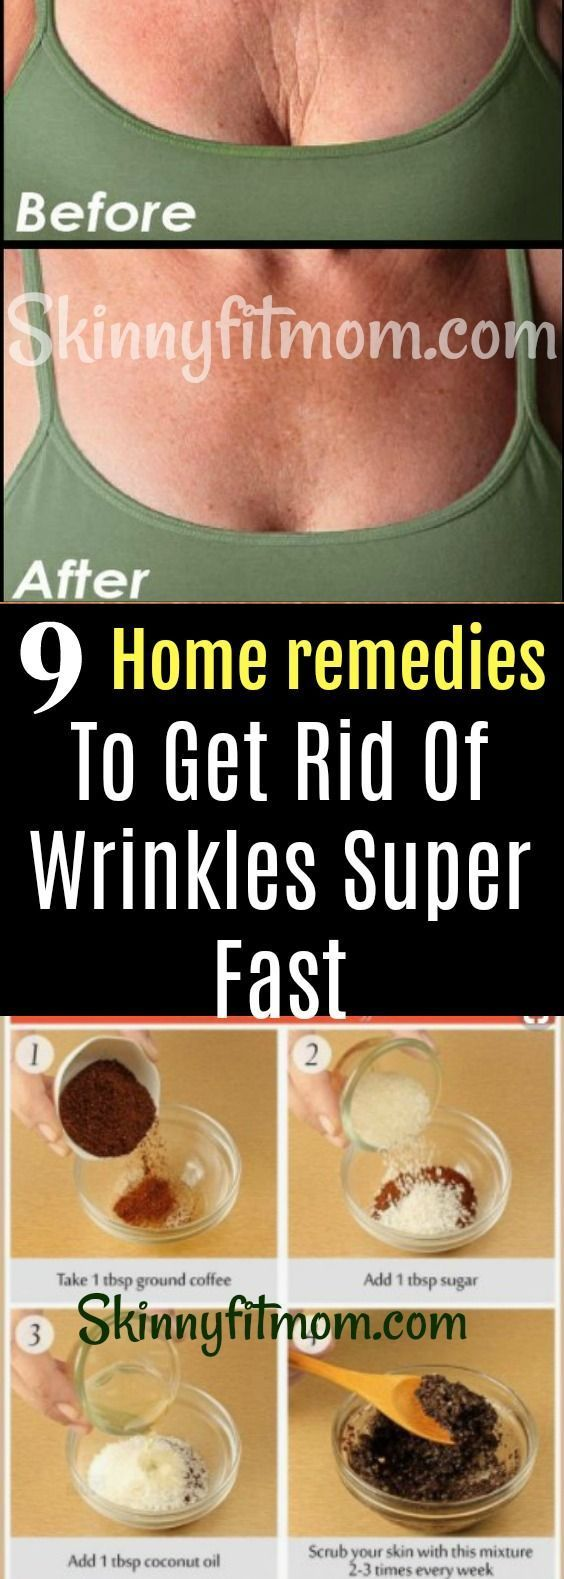 9 Home Remedies For Anti-Aging and To Help Make Wrinkles Around Your Face, Mouth And Eyes Disappear Super Fast! Tutorials And Step By Step Skin Care Routines. #antiagingbeautyproducts